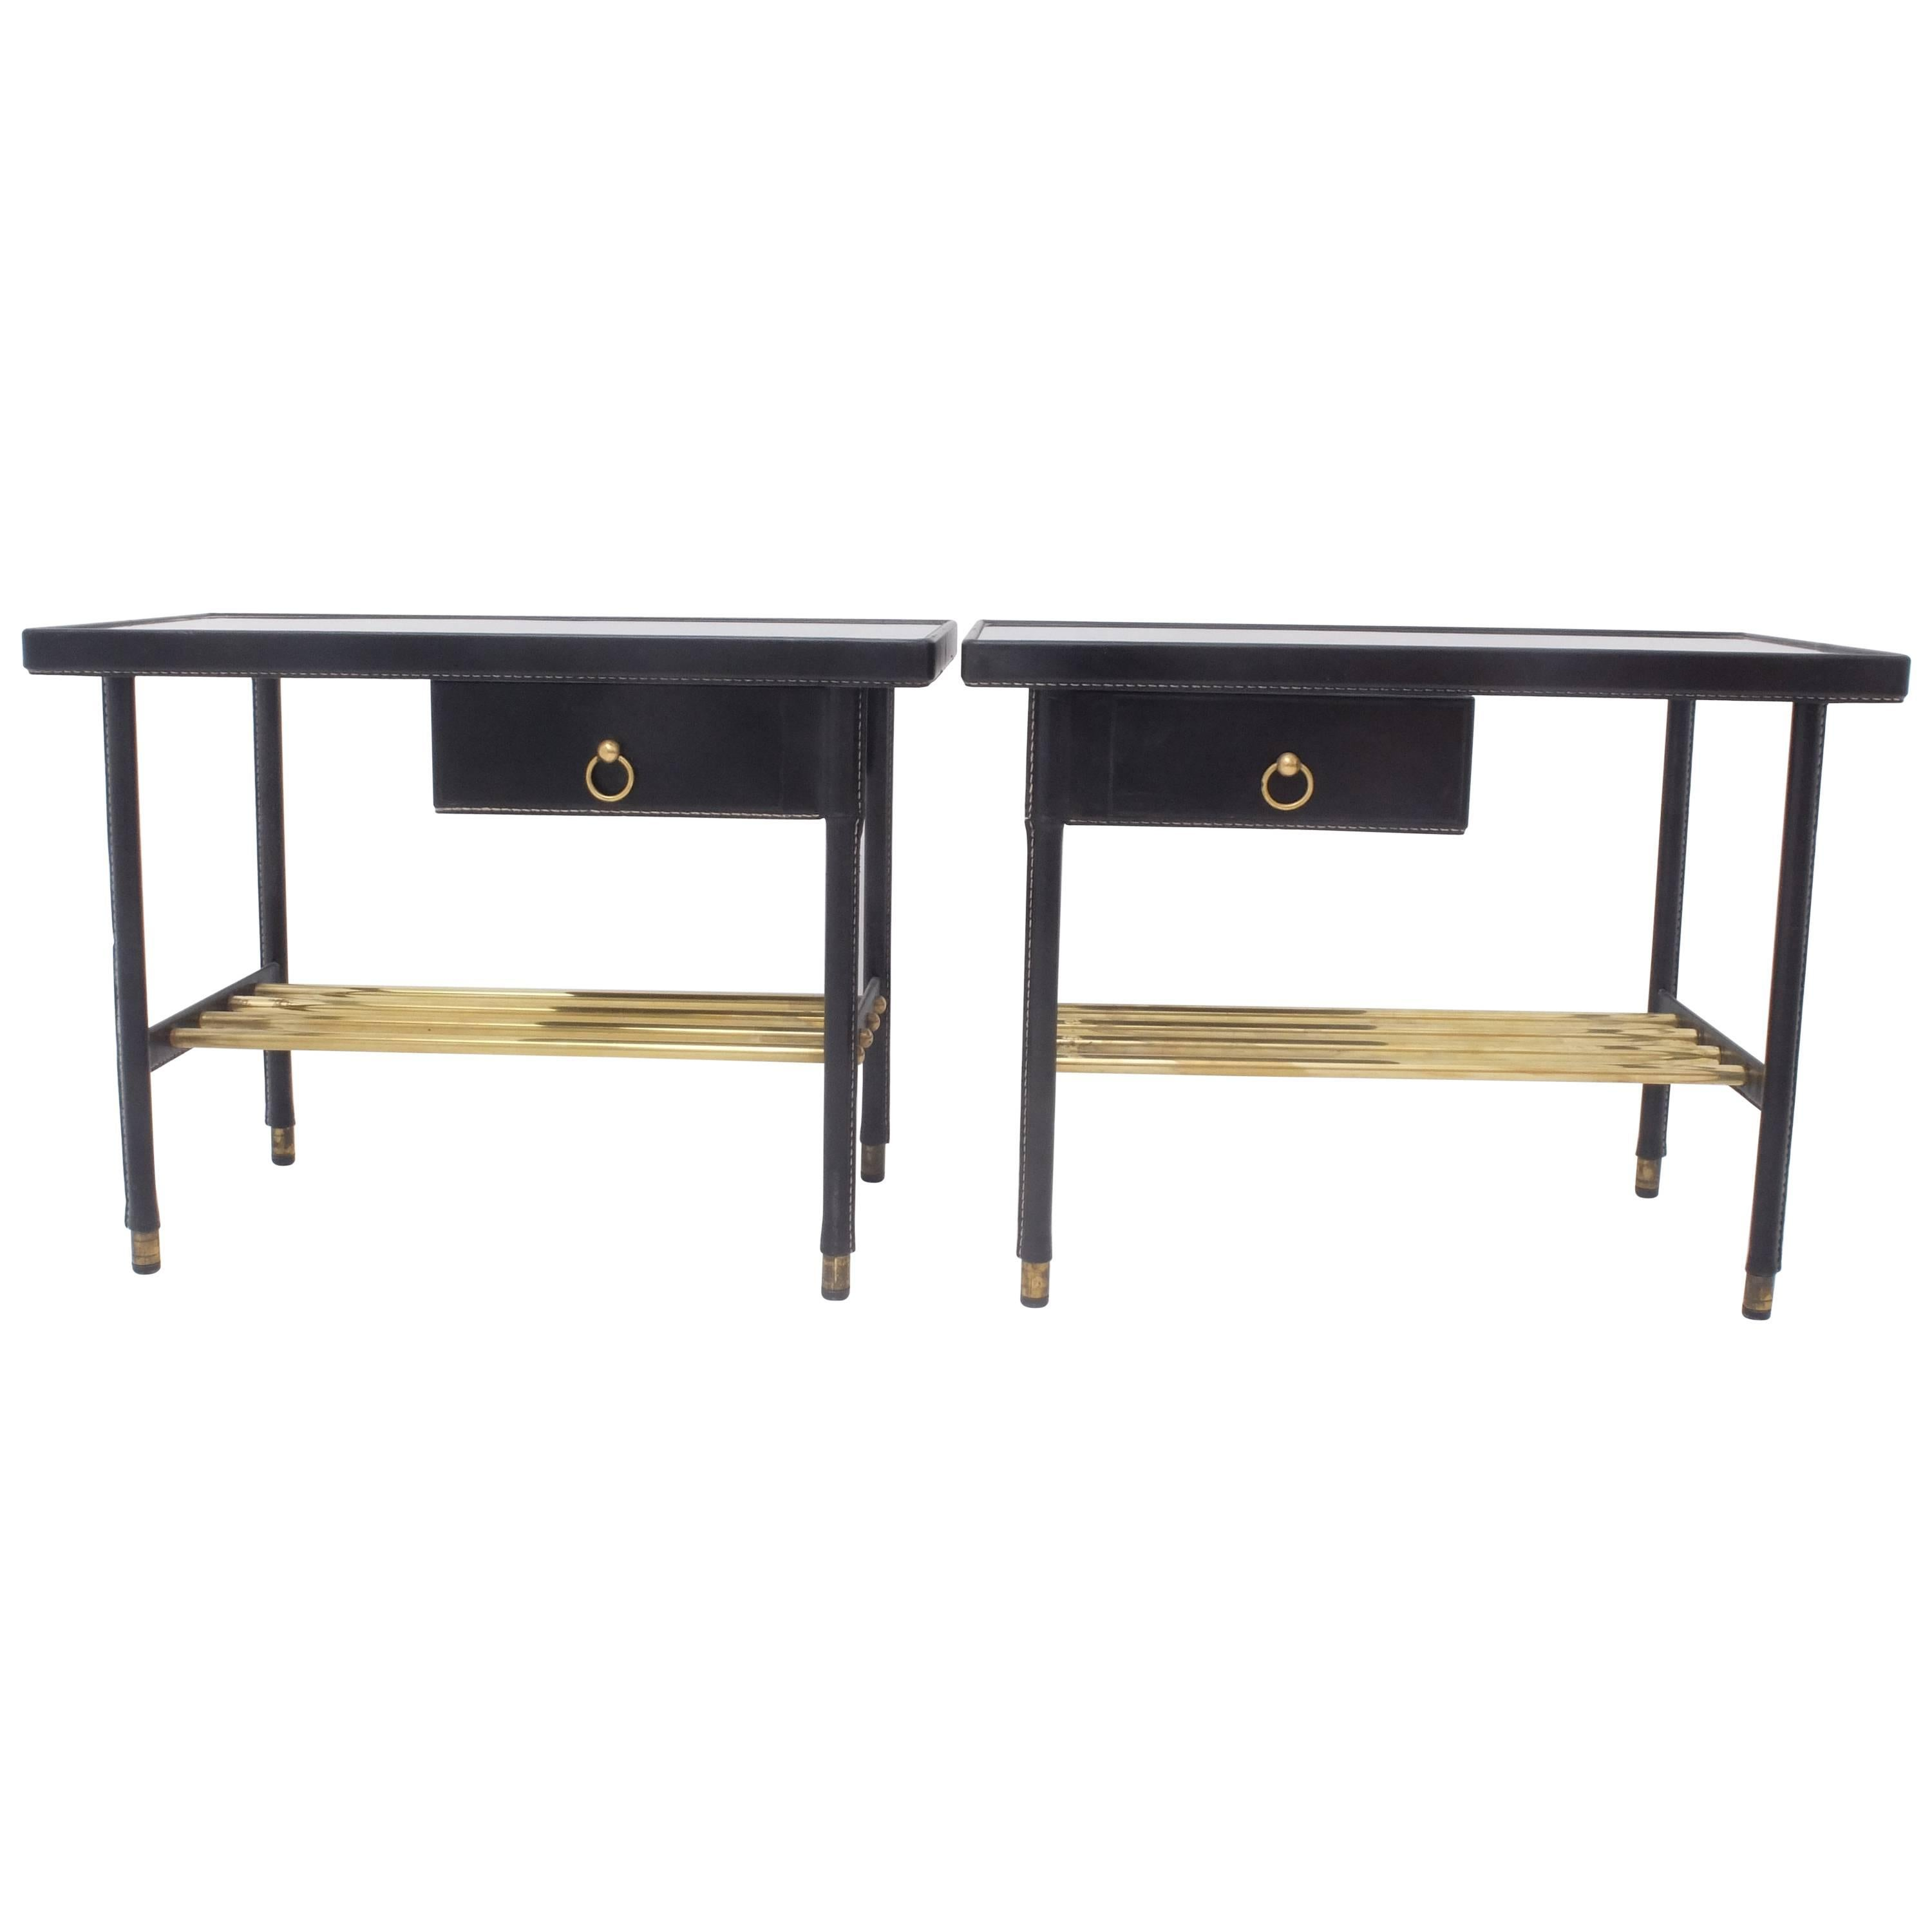 jacques adnet hermes night stands sofa tables hand stitched black leather 1